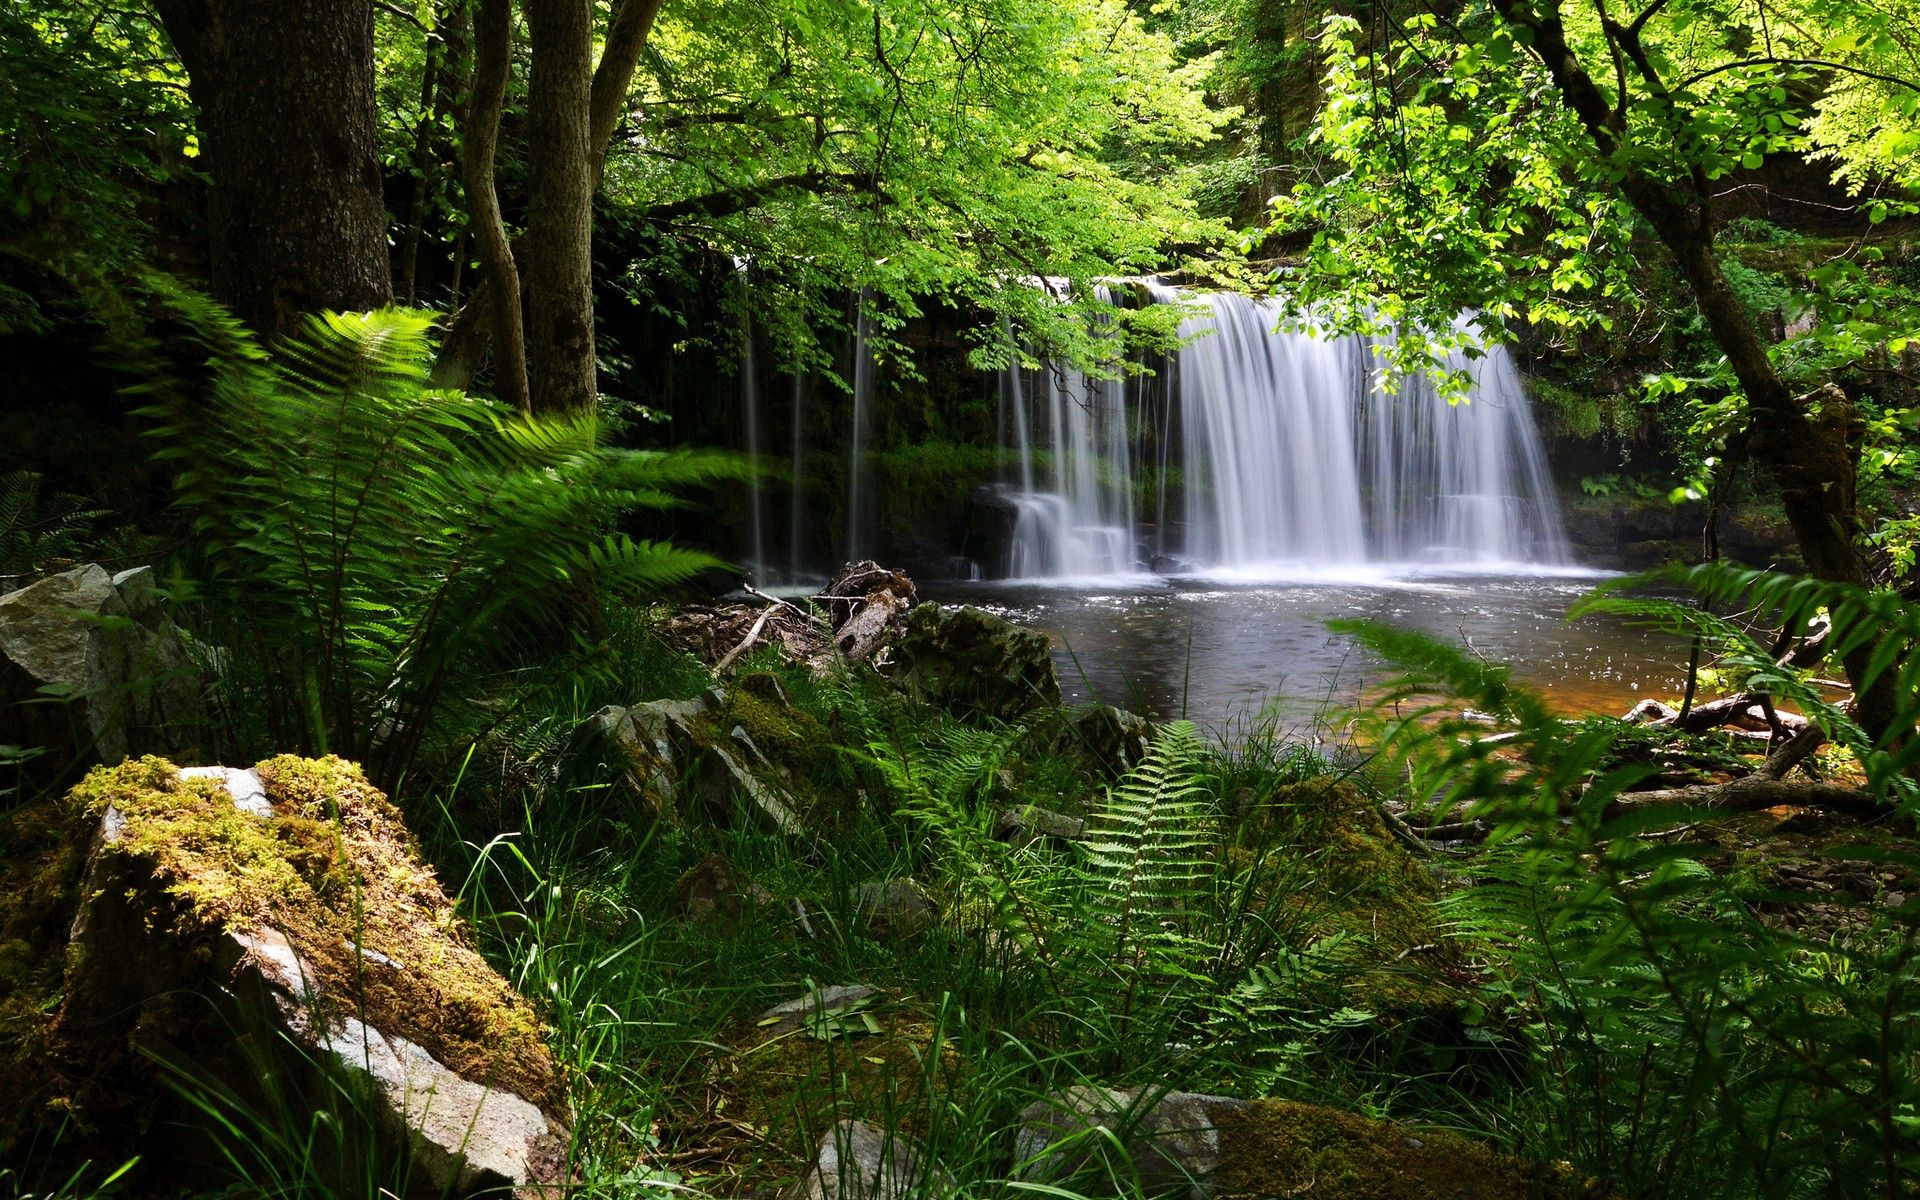 132450 download wallpaper Nature, Waterfall, Grass, Shadow screensavers and pictures for free